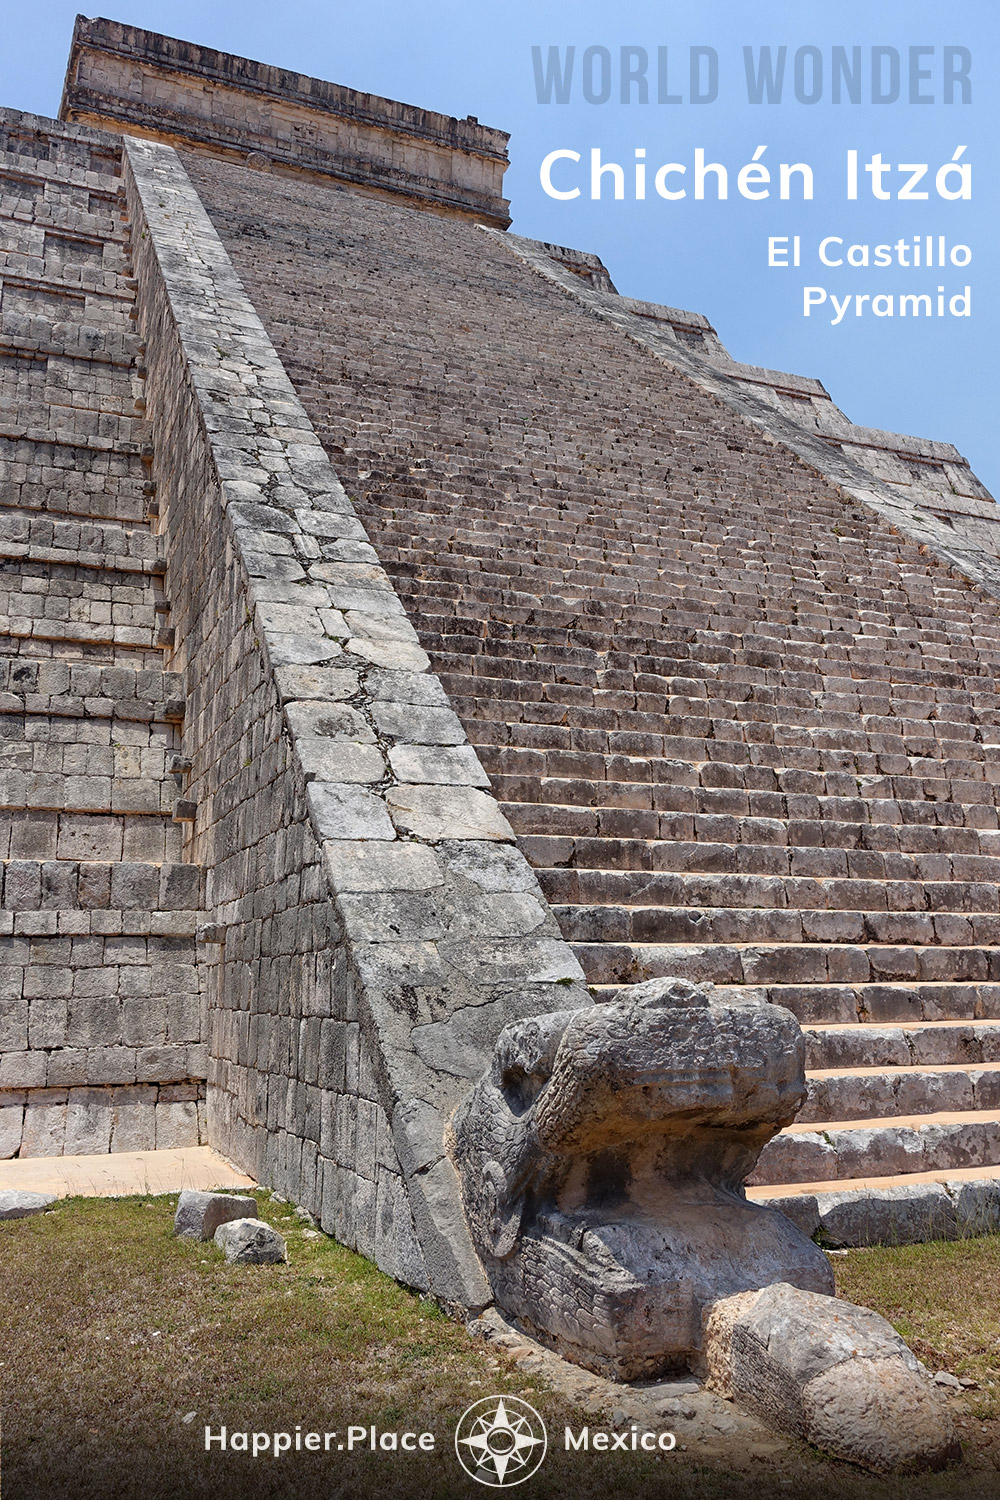 World Wonder and UNESCO Heritage Site: El Castillo pyramid in Chichen Itza, Mayan ruins in Yucatan, Mexico. Serpent and stairs lead up to Temple of Kukulcan, the Maya serpent deity.  #HappierPlace #Mexico #WorldWonder #bucketlist #pyramid #travelguide #outdoors